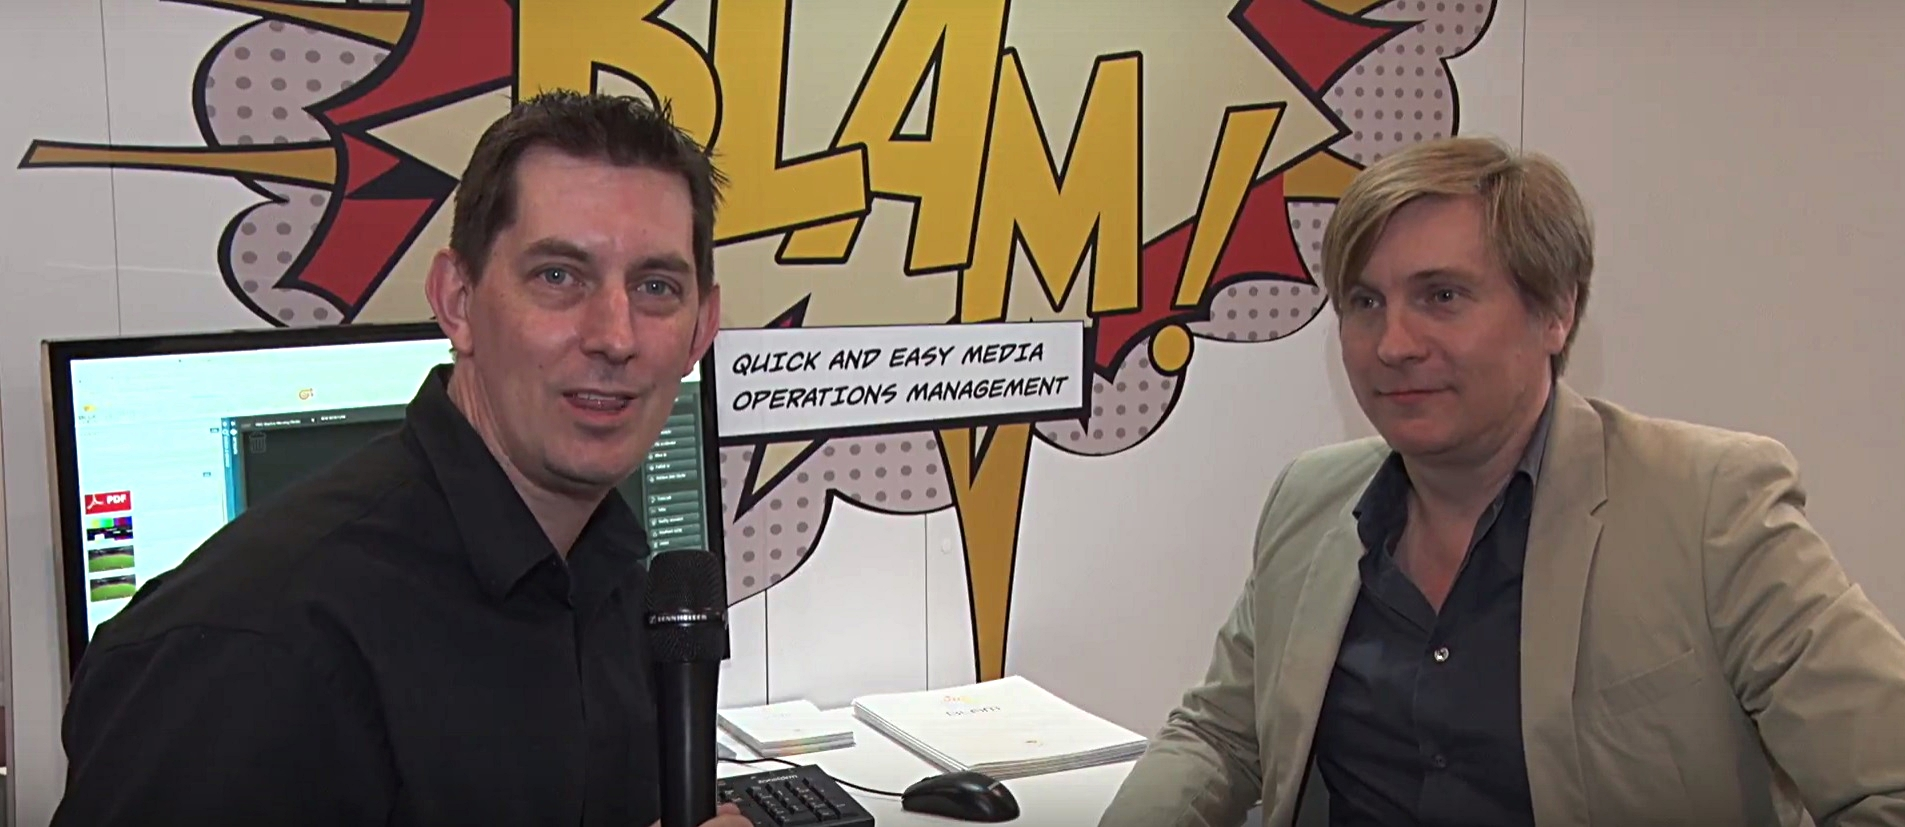 marketing at trade shows - video interview